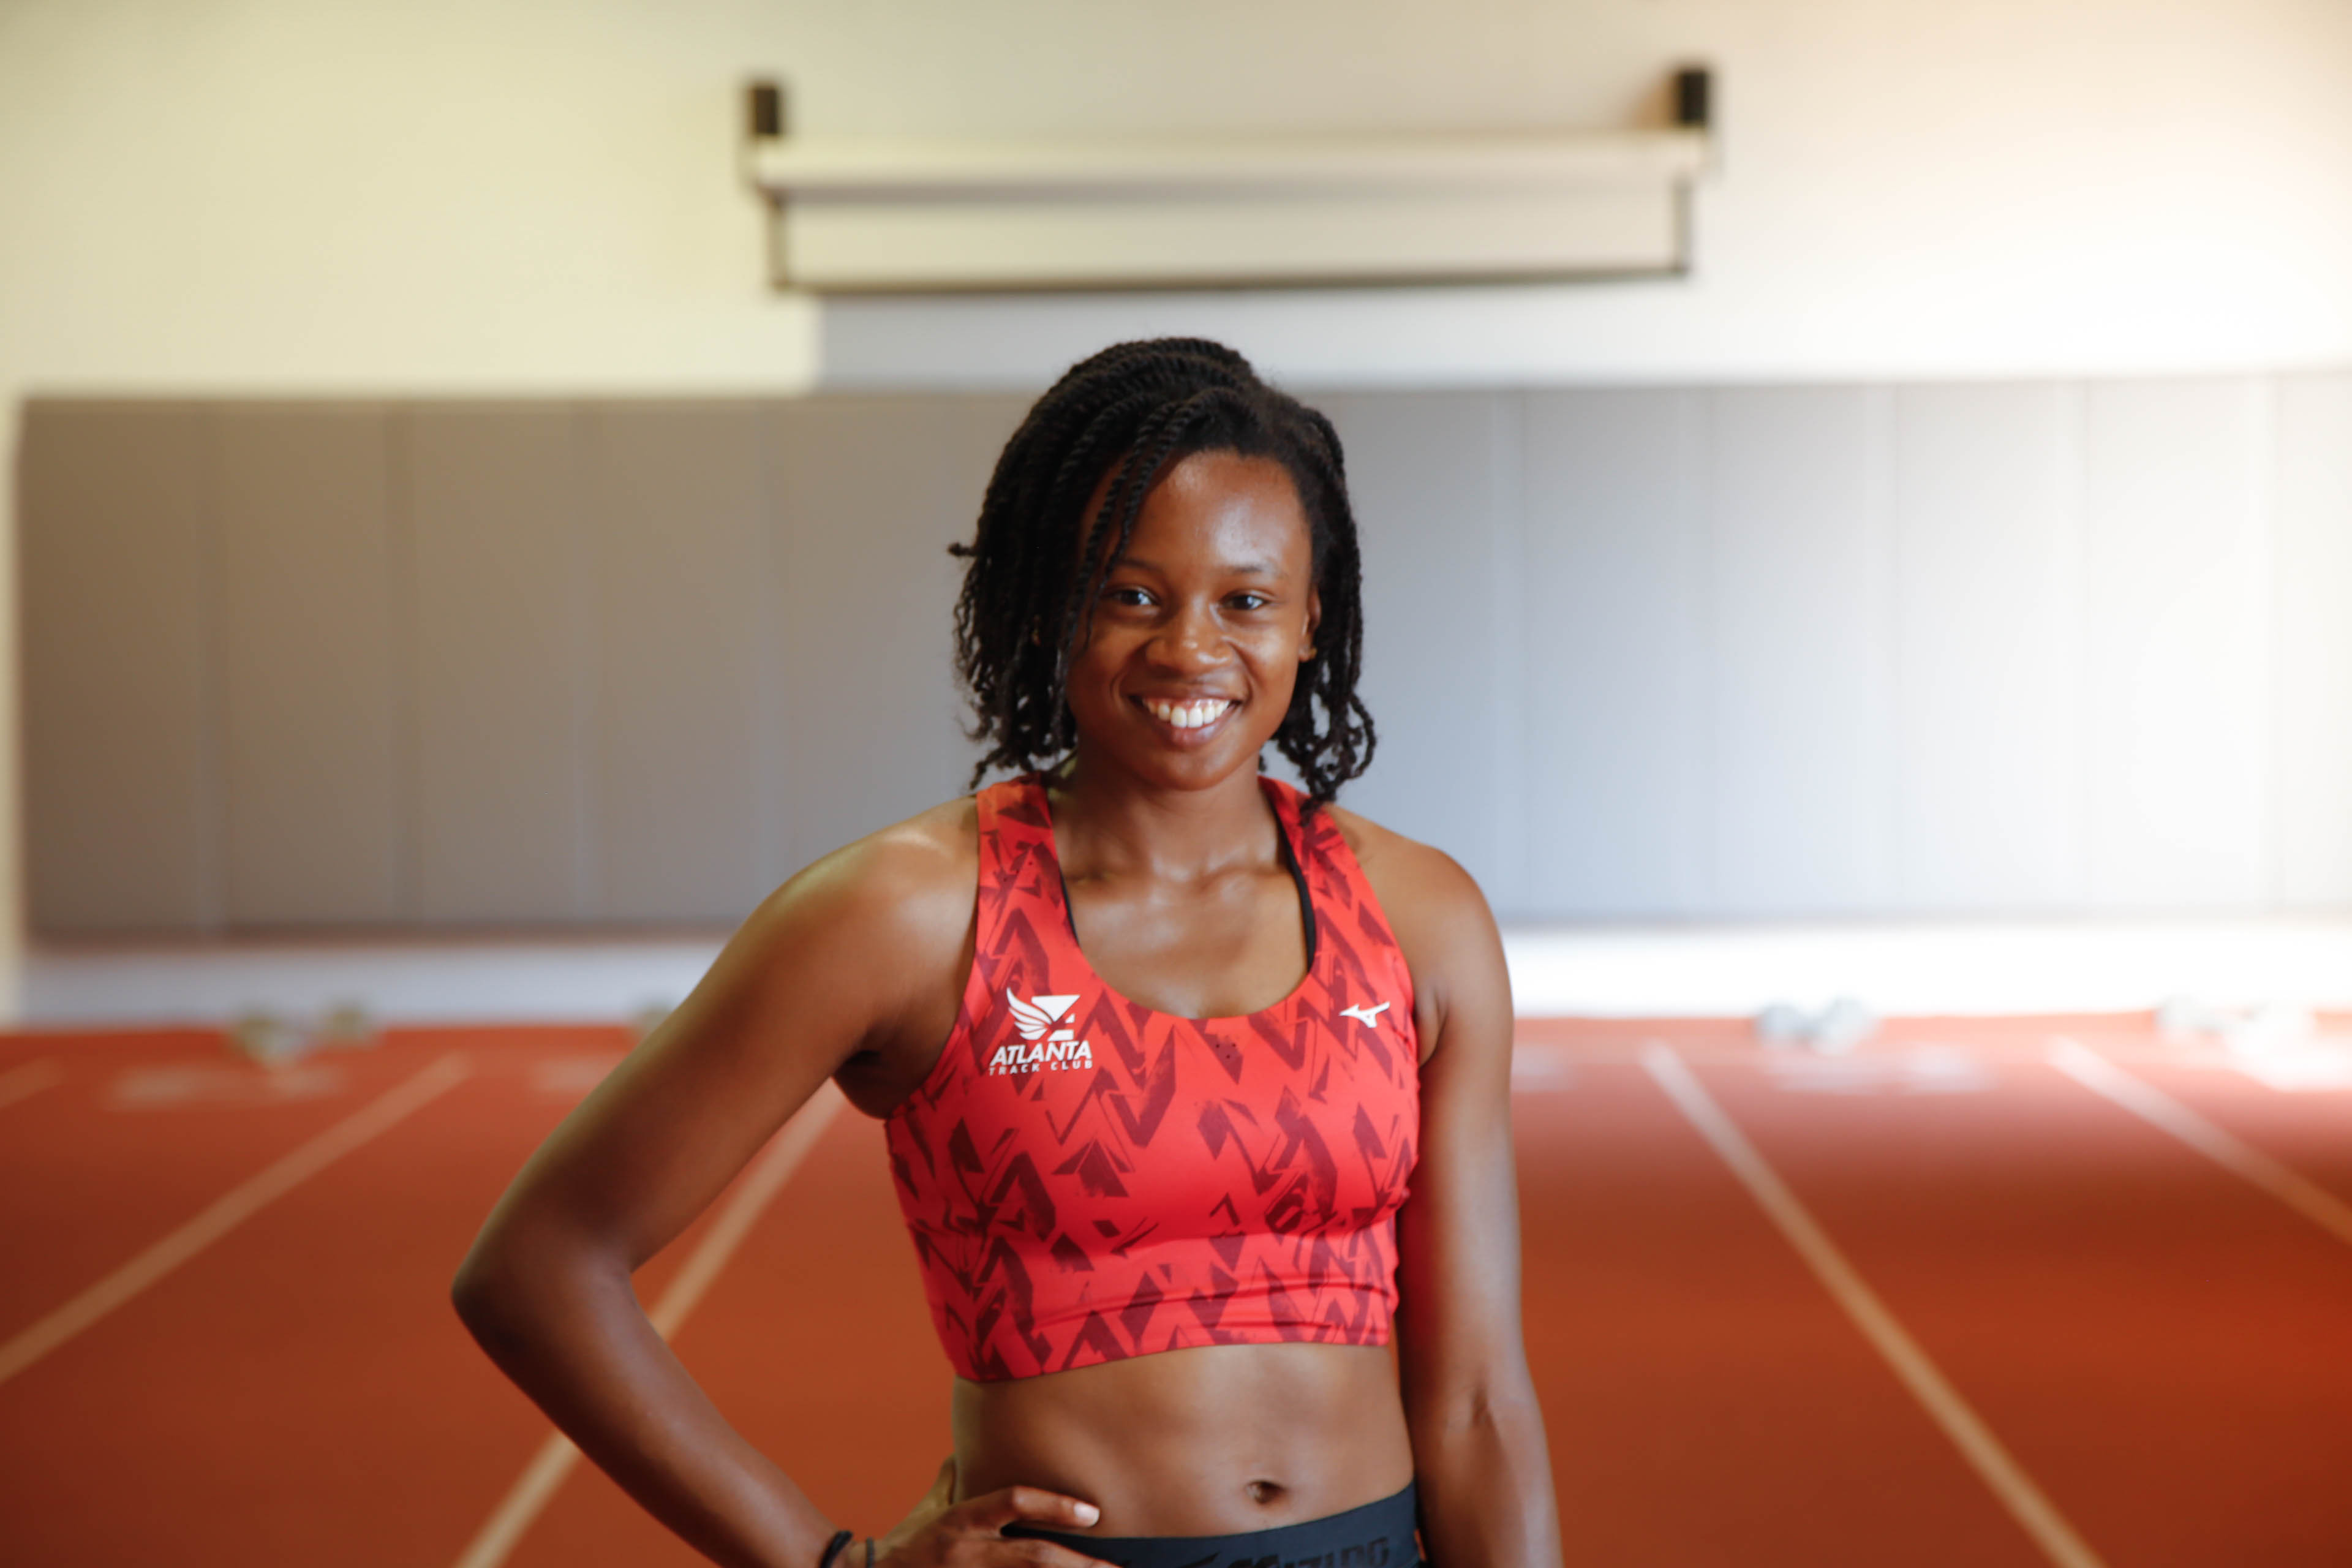 Atlanta Track Club's Keturah Orji Wins Bowerman Award